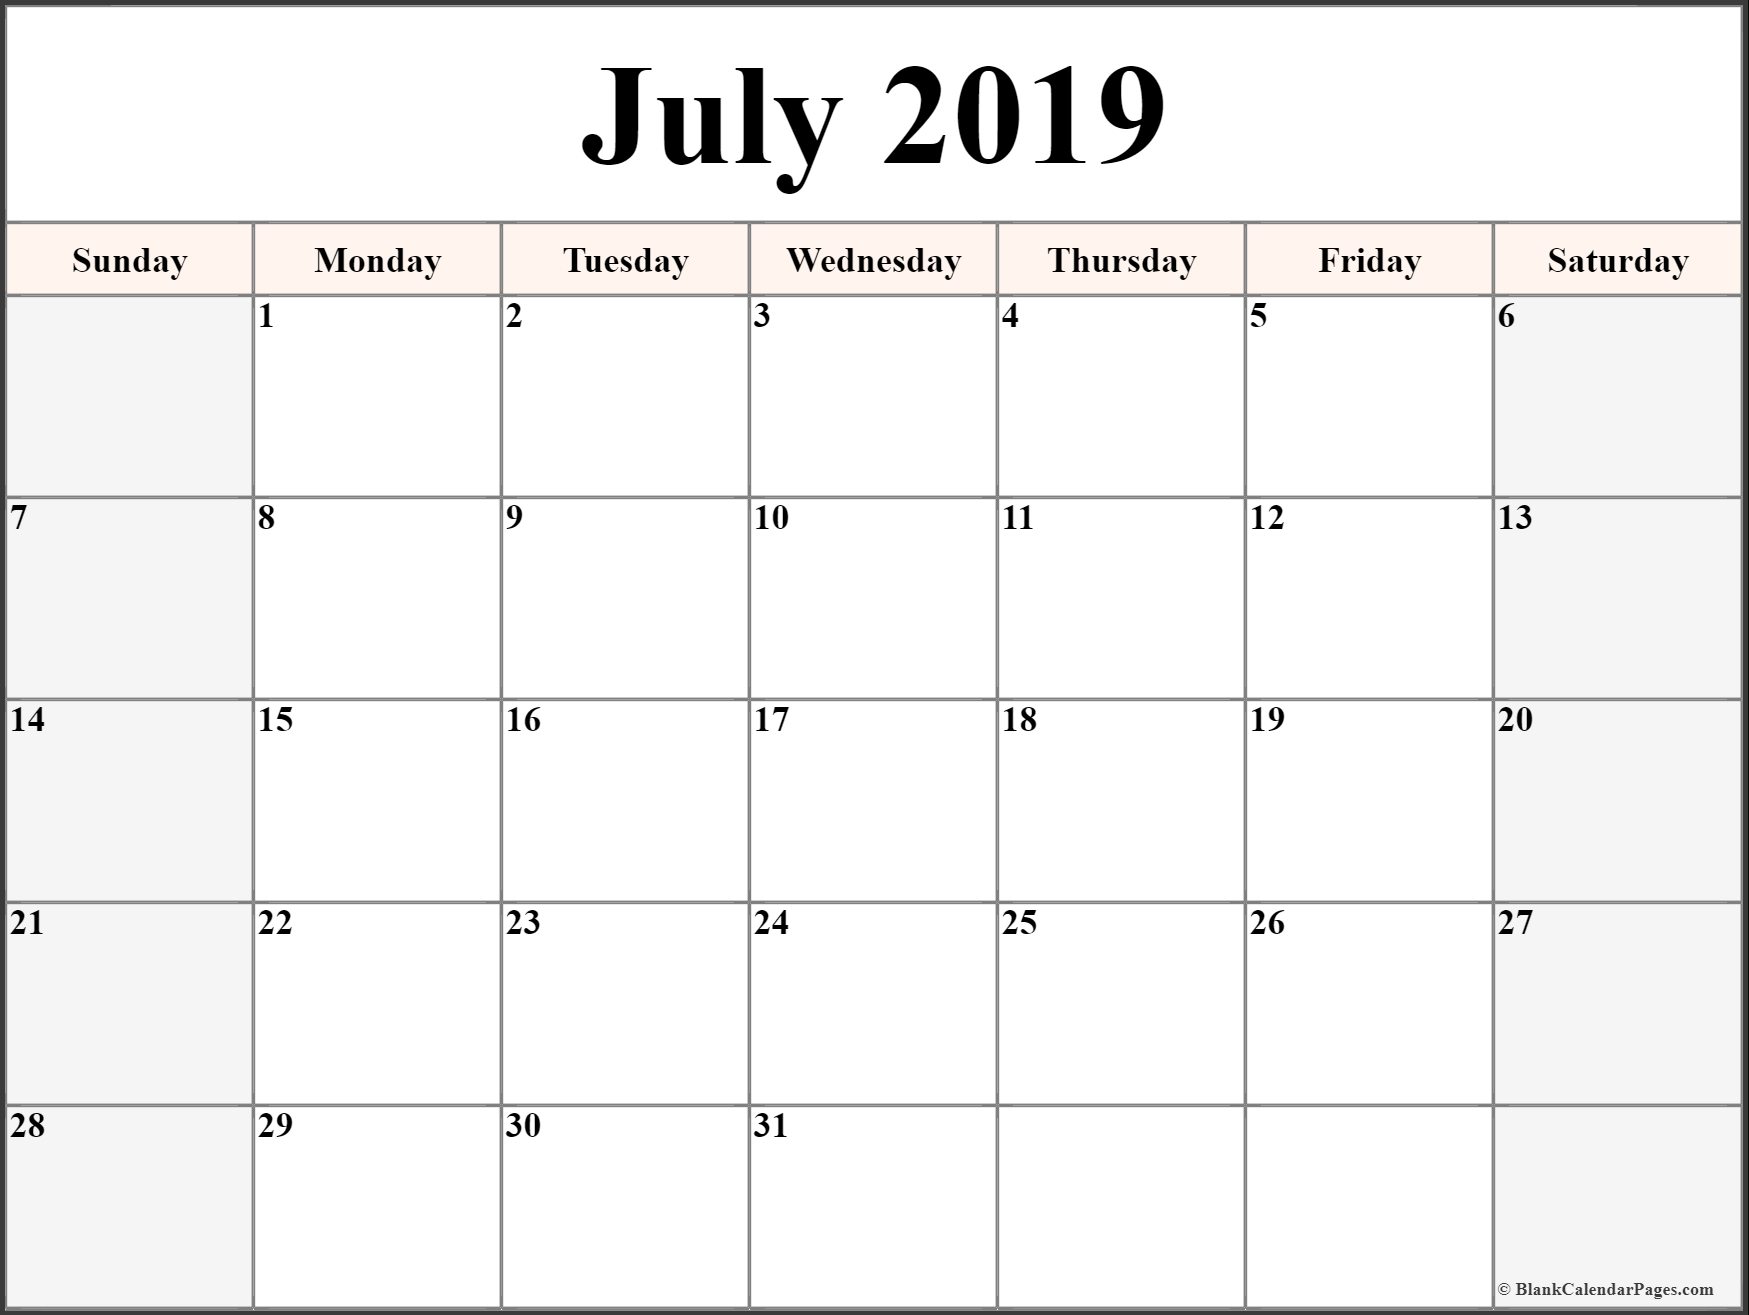 2019 Calendar - Monthly Calendar Pages to Download and Print